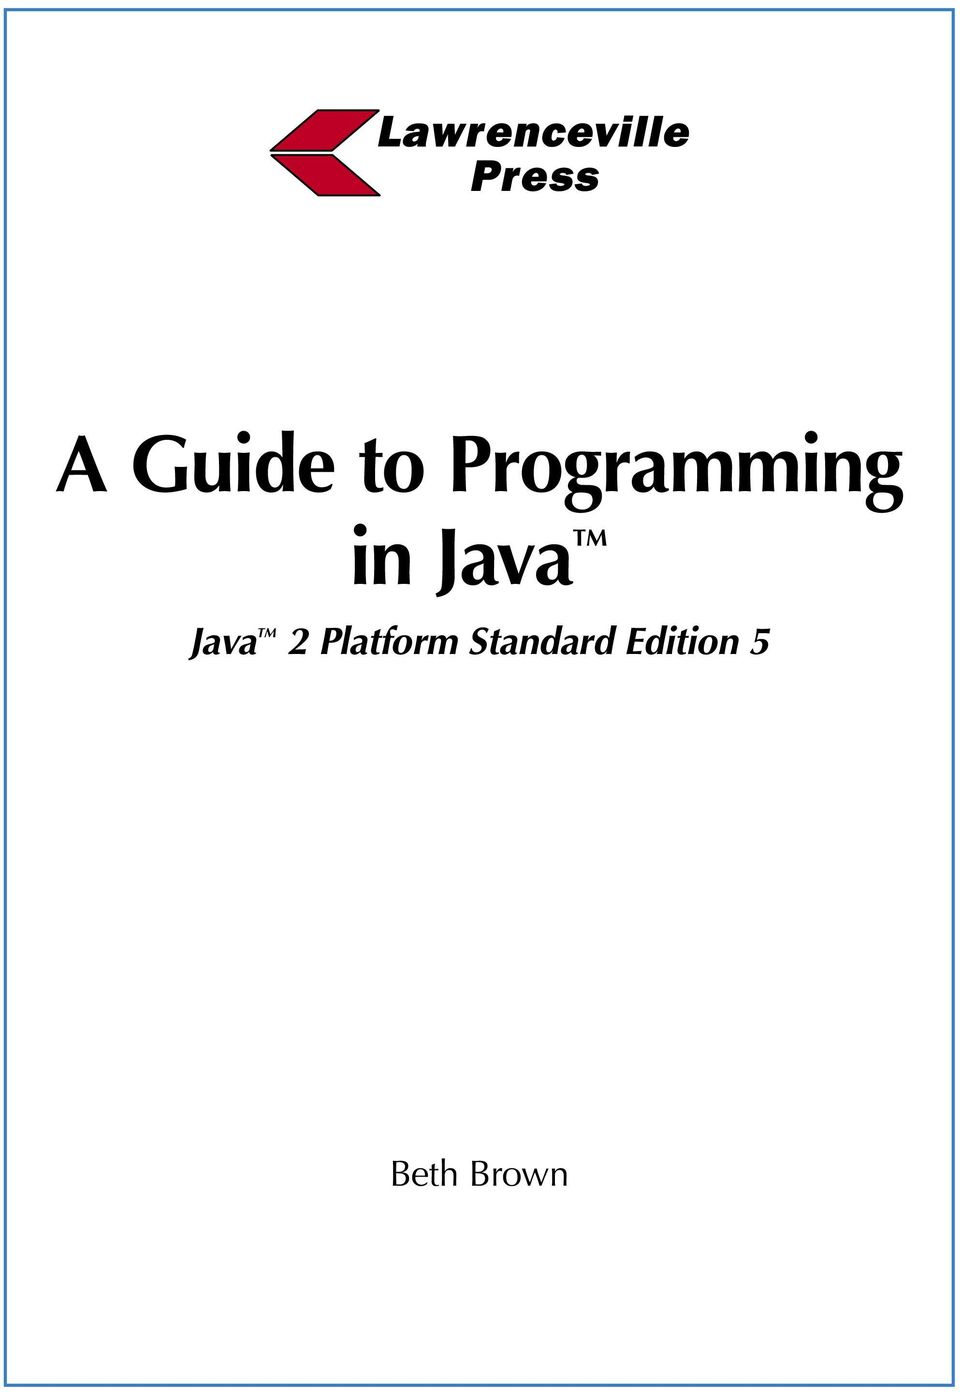 java a guide to programming in java 2 platform standard edition 5 rh docplayer net